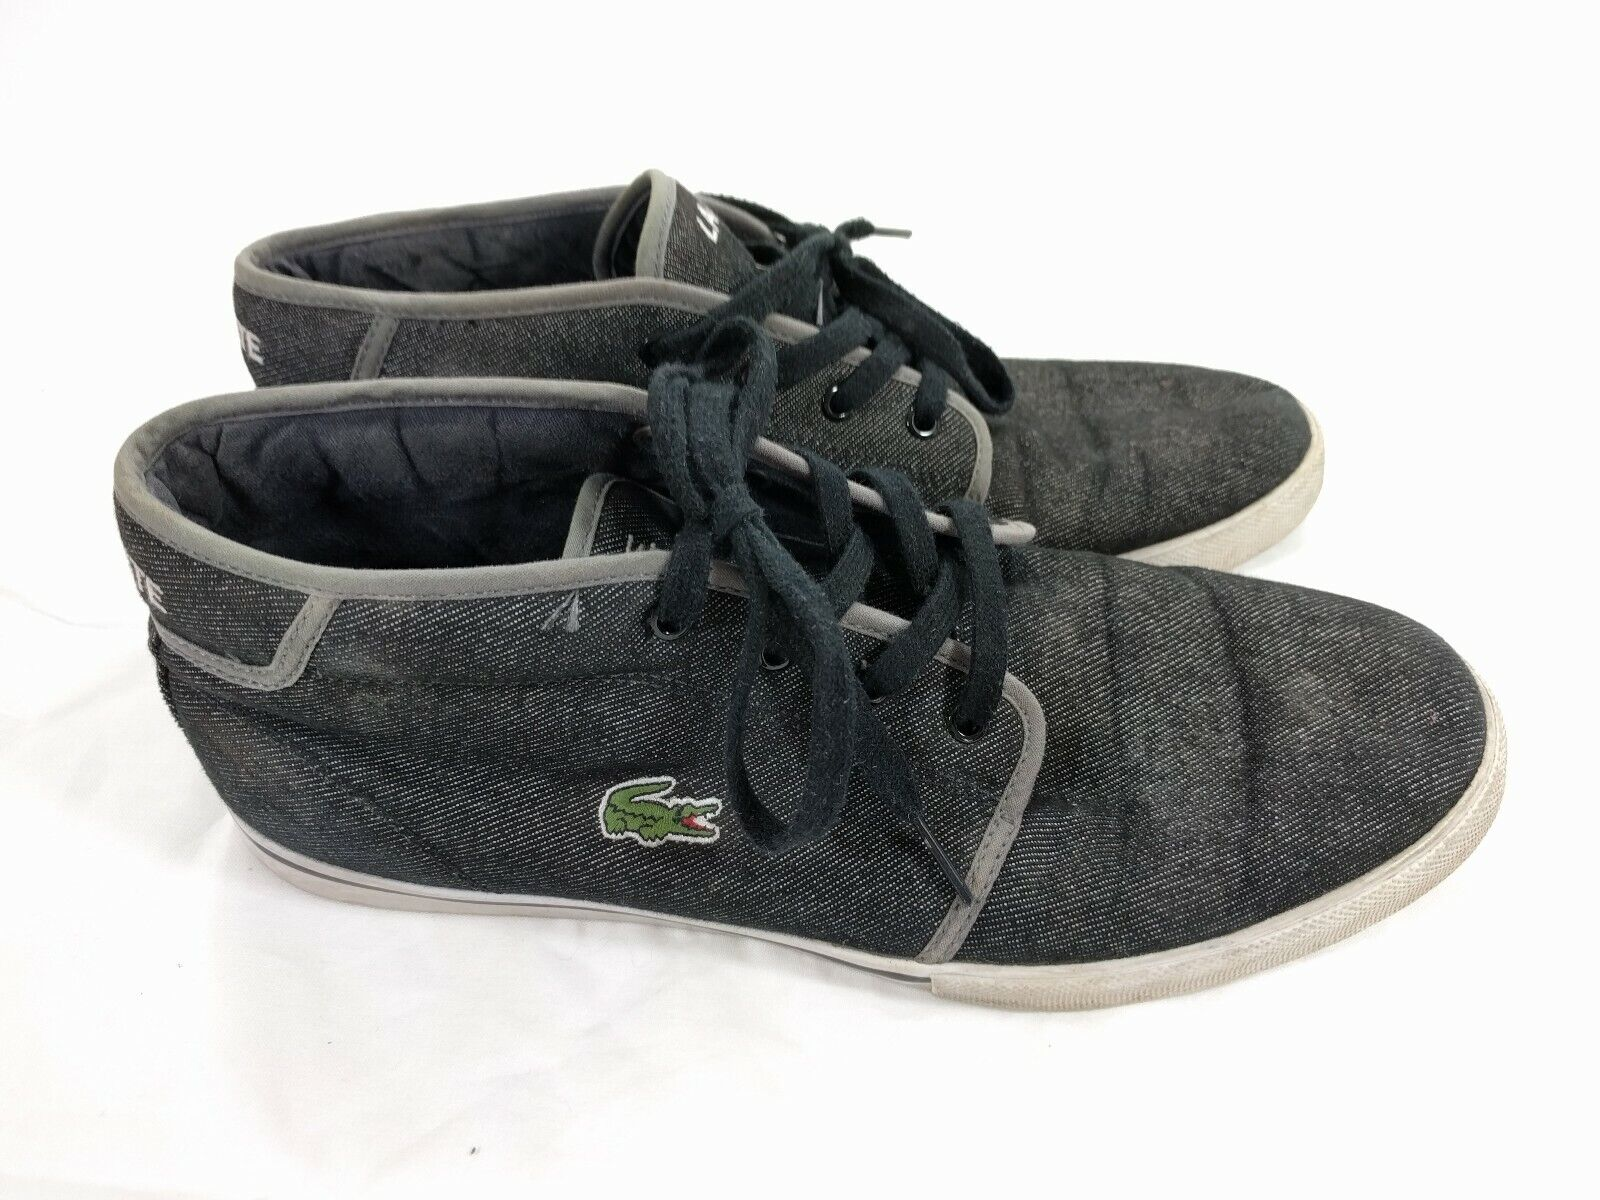 Lacoste Sport Mens Ampthill TK Sneakers shoes Hightop Canvas Chukka US Size 11